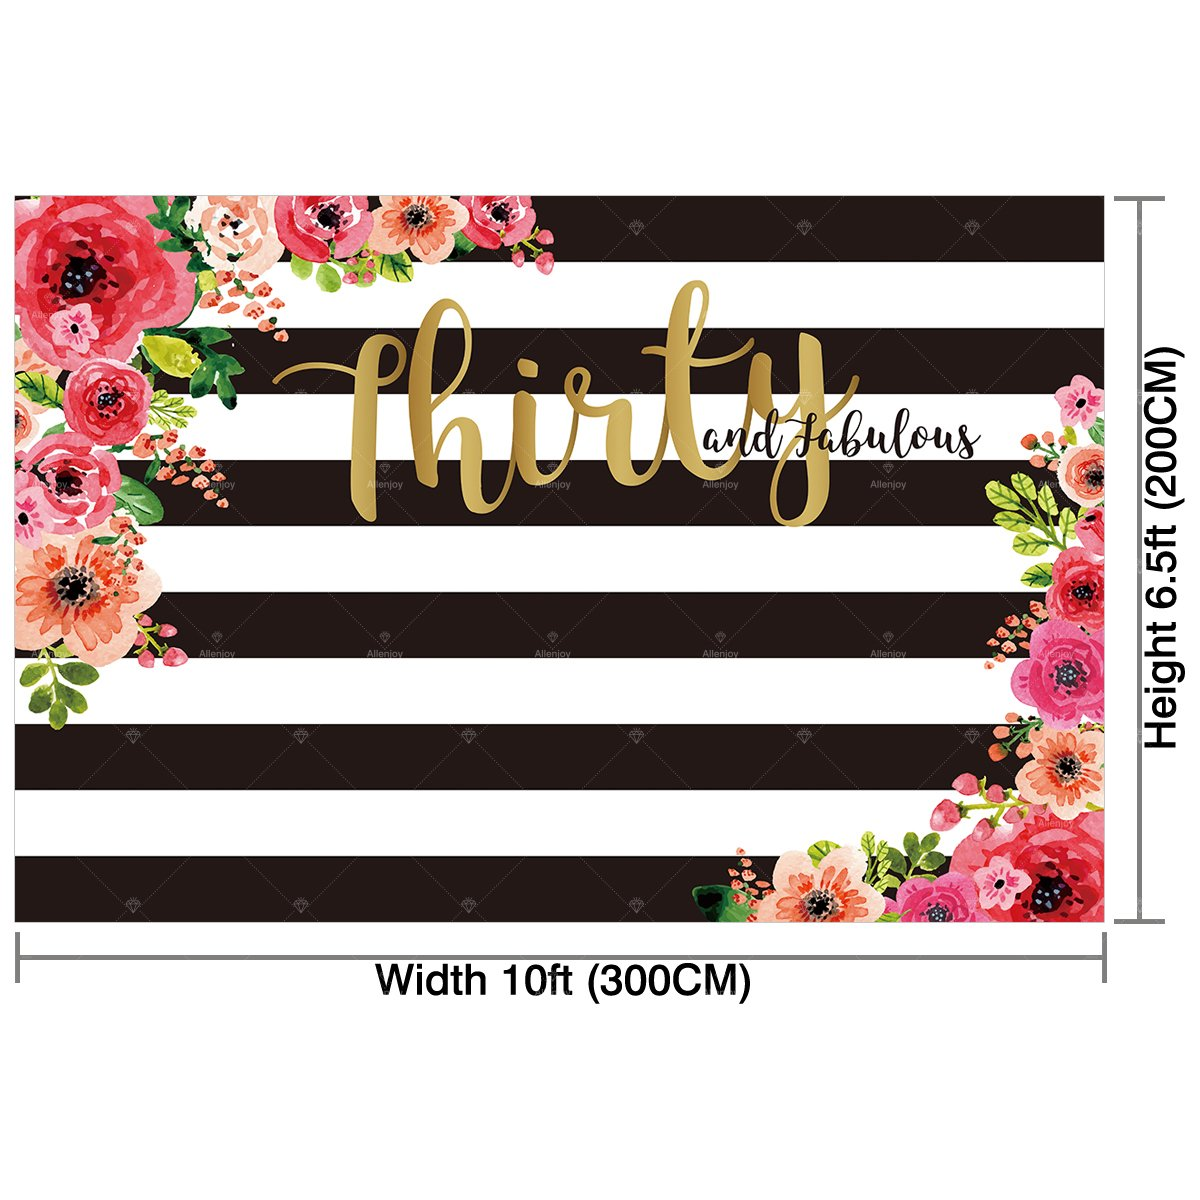 Allenjoy 10x65ft 30th Birthday Party Backdrop For Woman Lady Cake Table Adult Thirty And Fabulous Banner Decoration Black White Stripe Watercolor